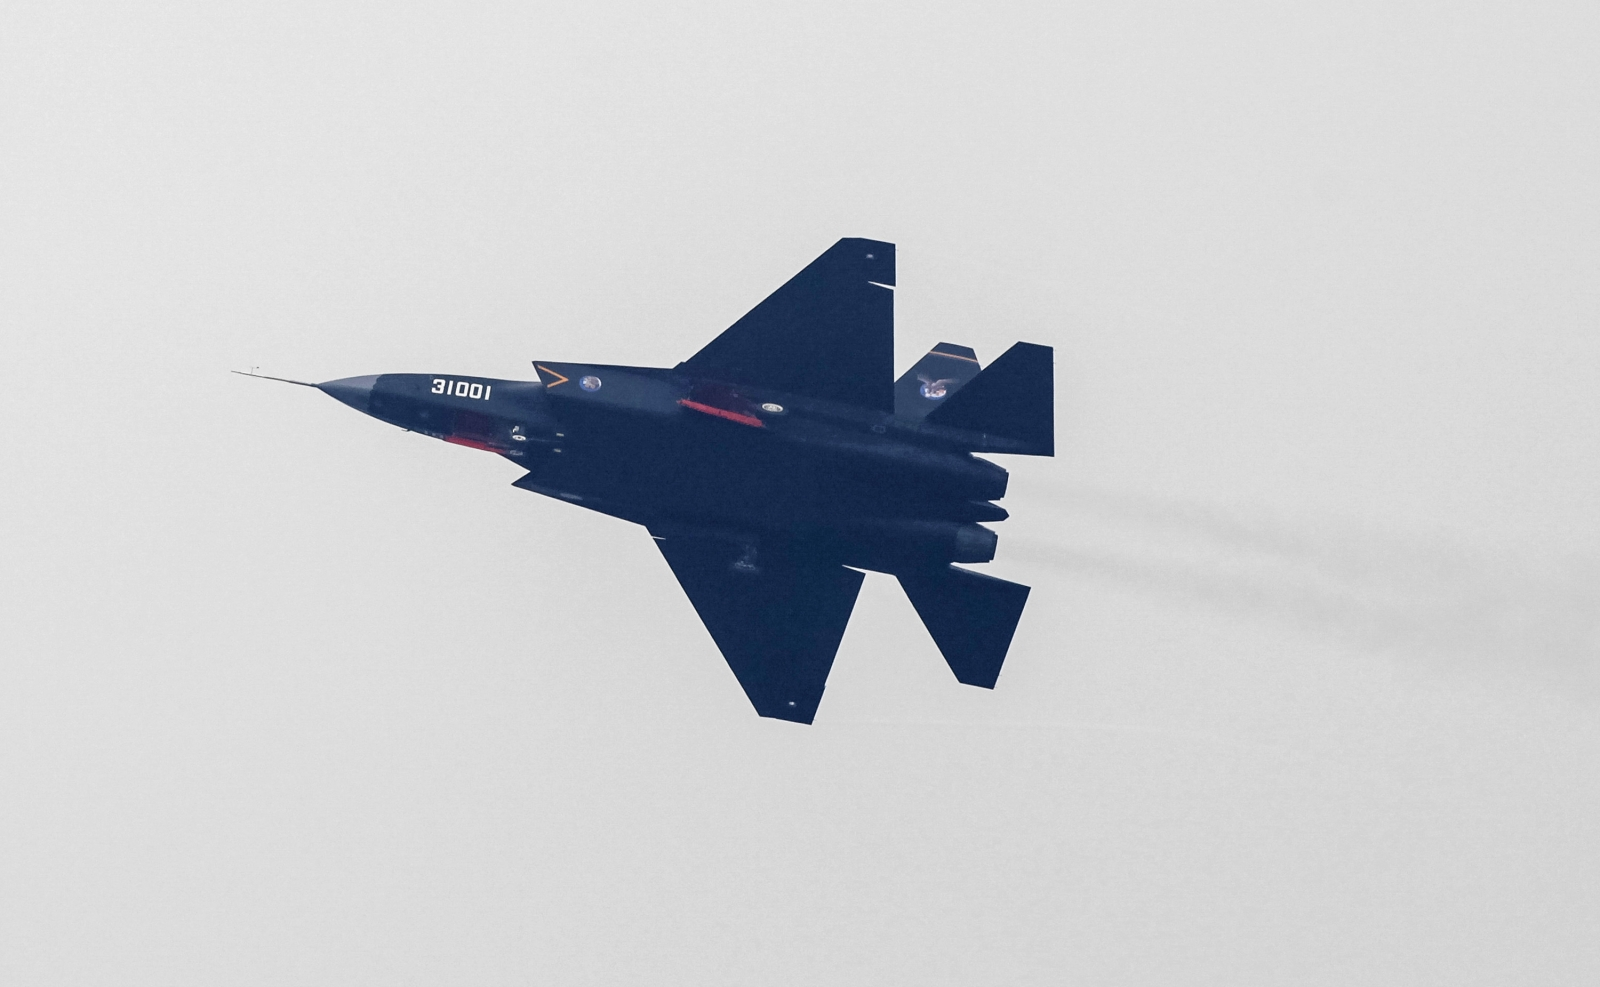 China's new stealth fighter jet